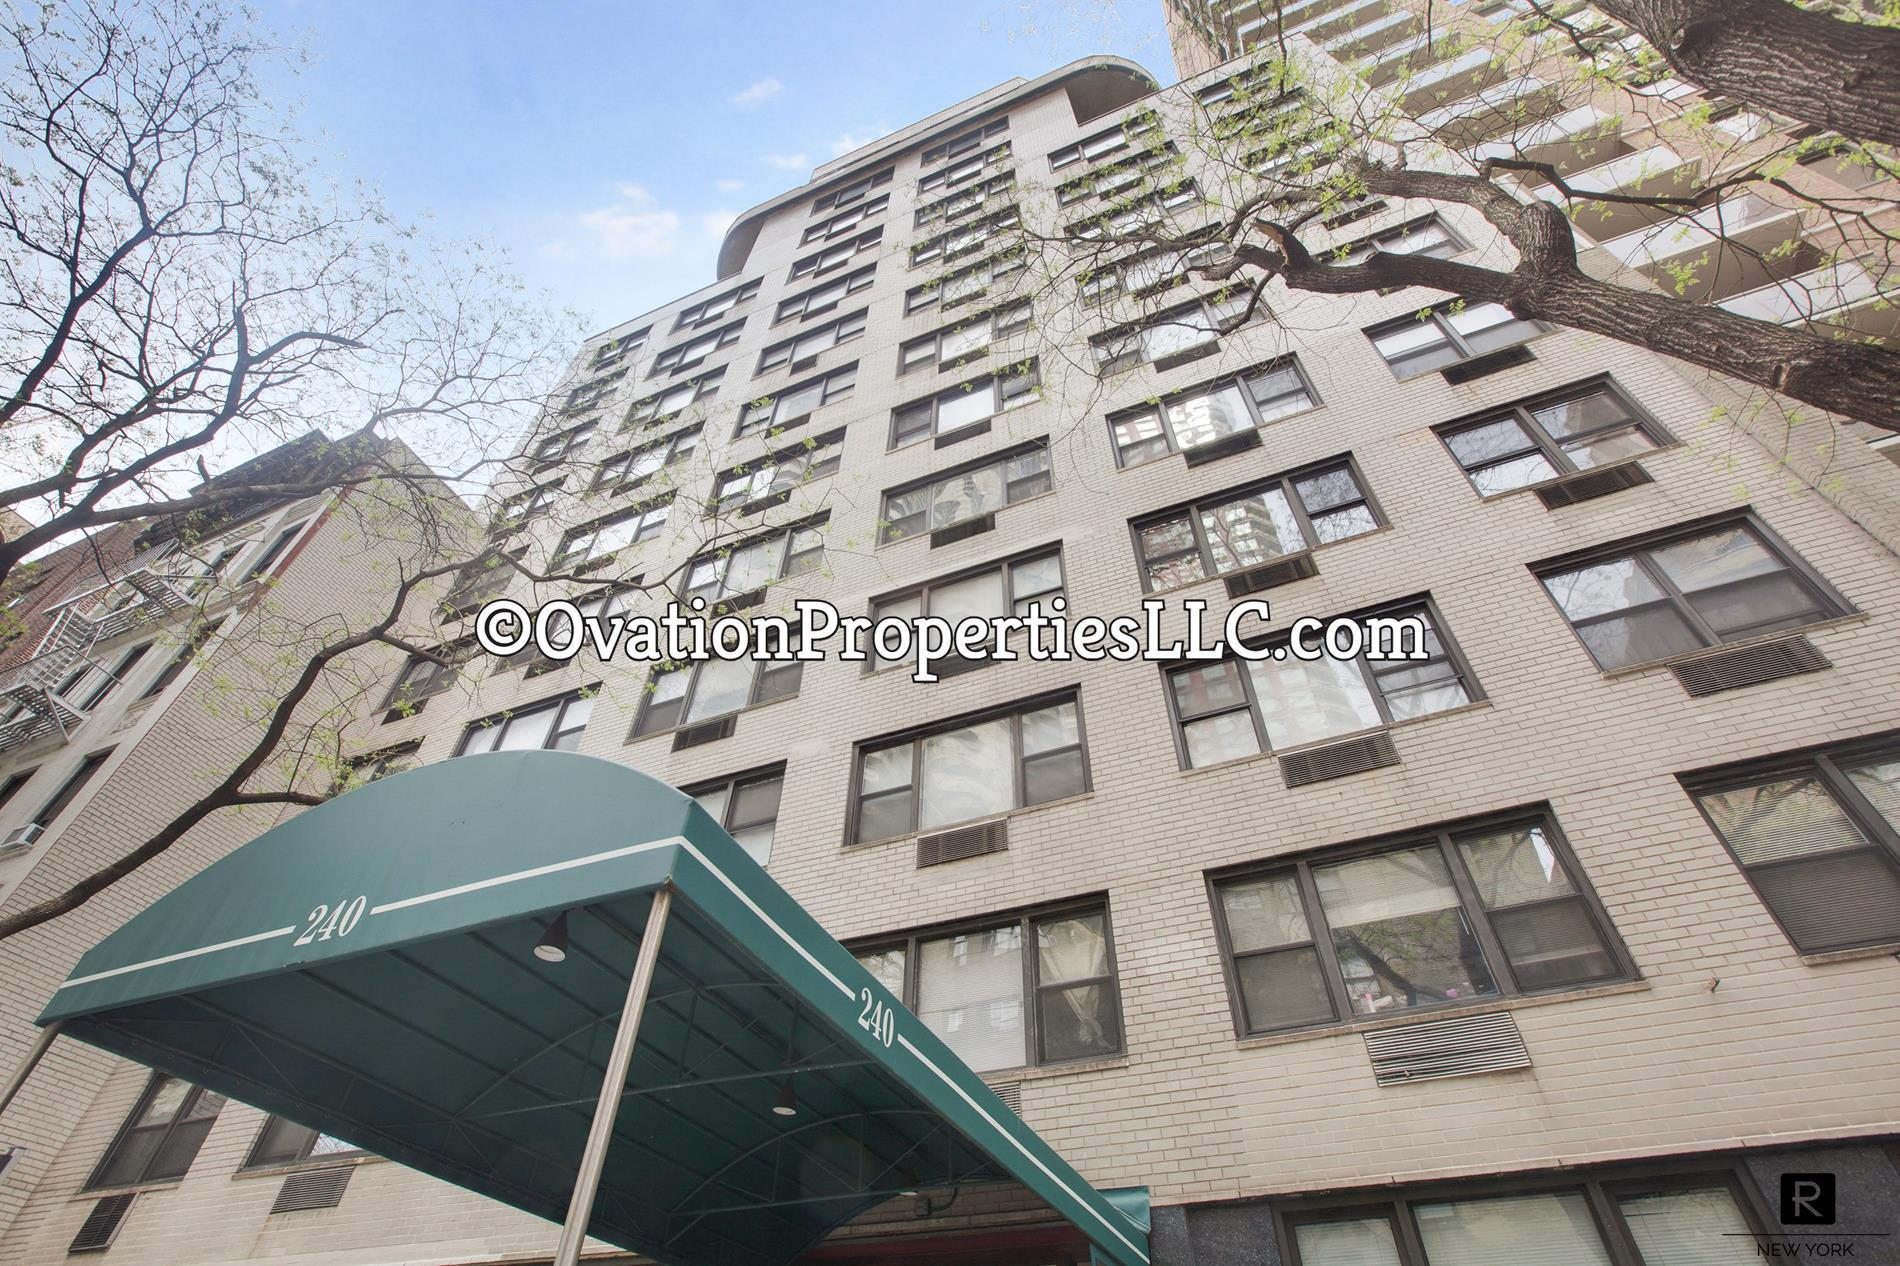 240 East 46th Street Midtown East New York NY 10017